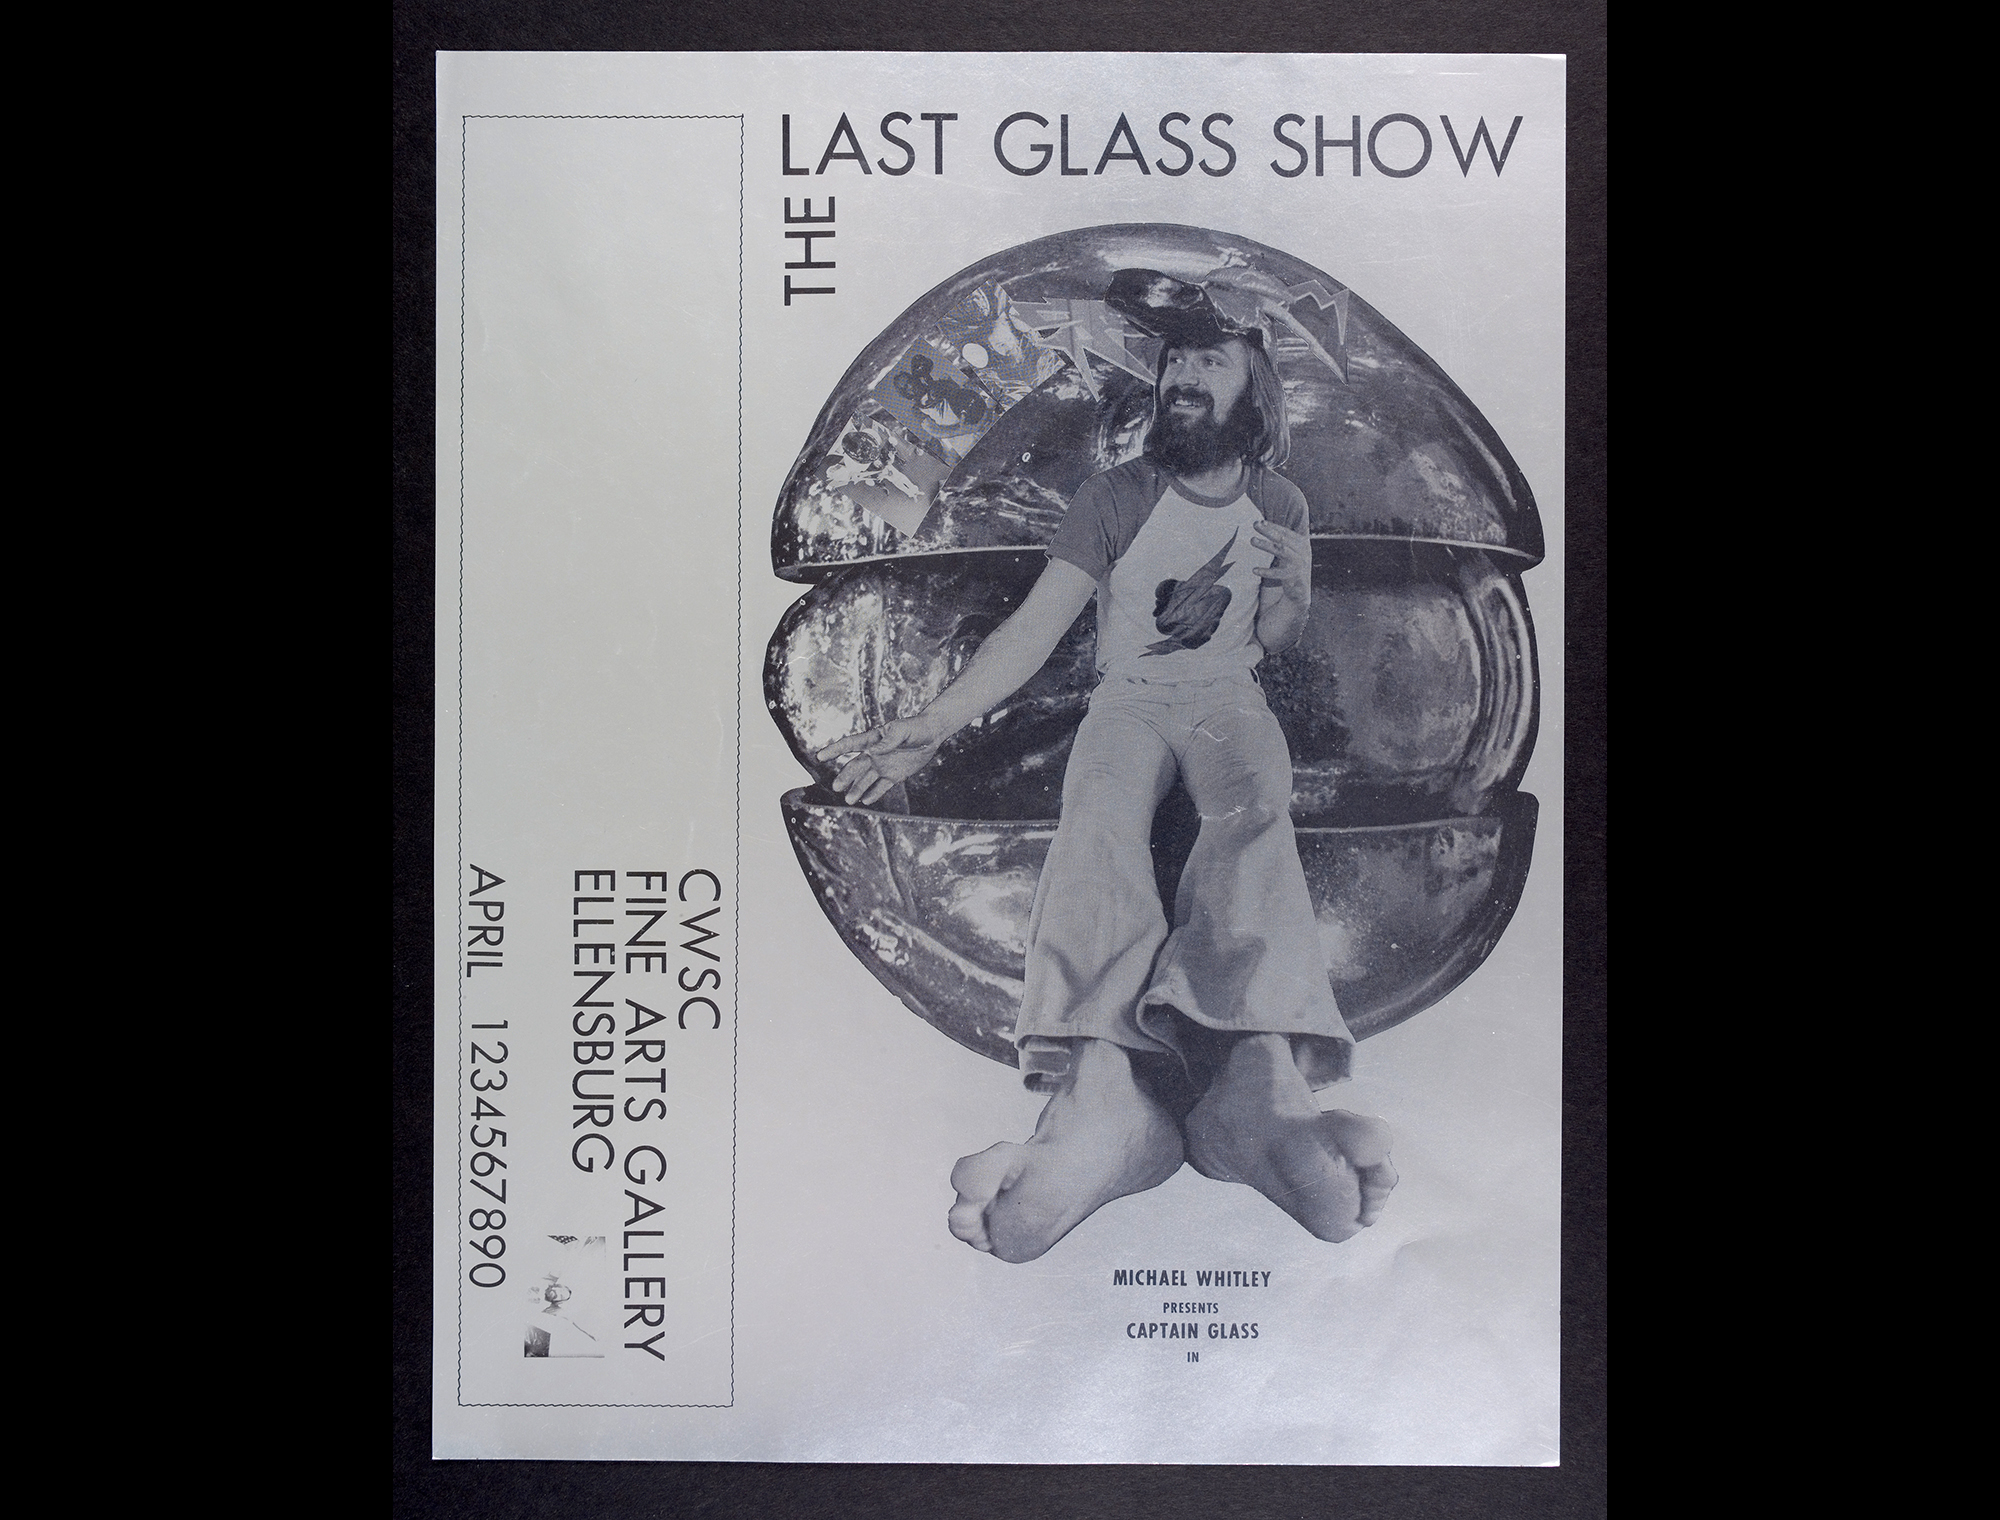 The last glass show, Central Washington State College Fine Arts Gallery, Ellensburg, Wash. CMGL 95402.